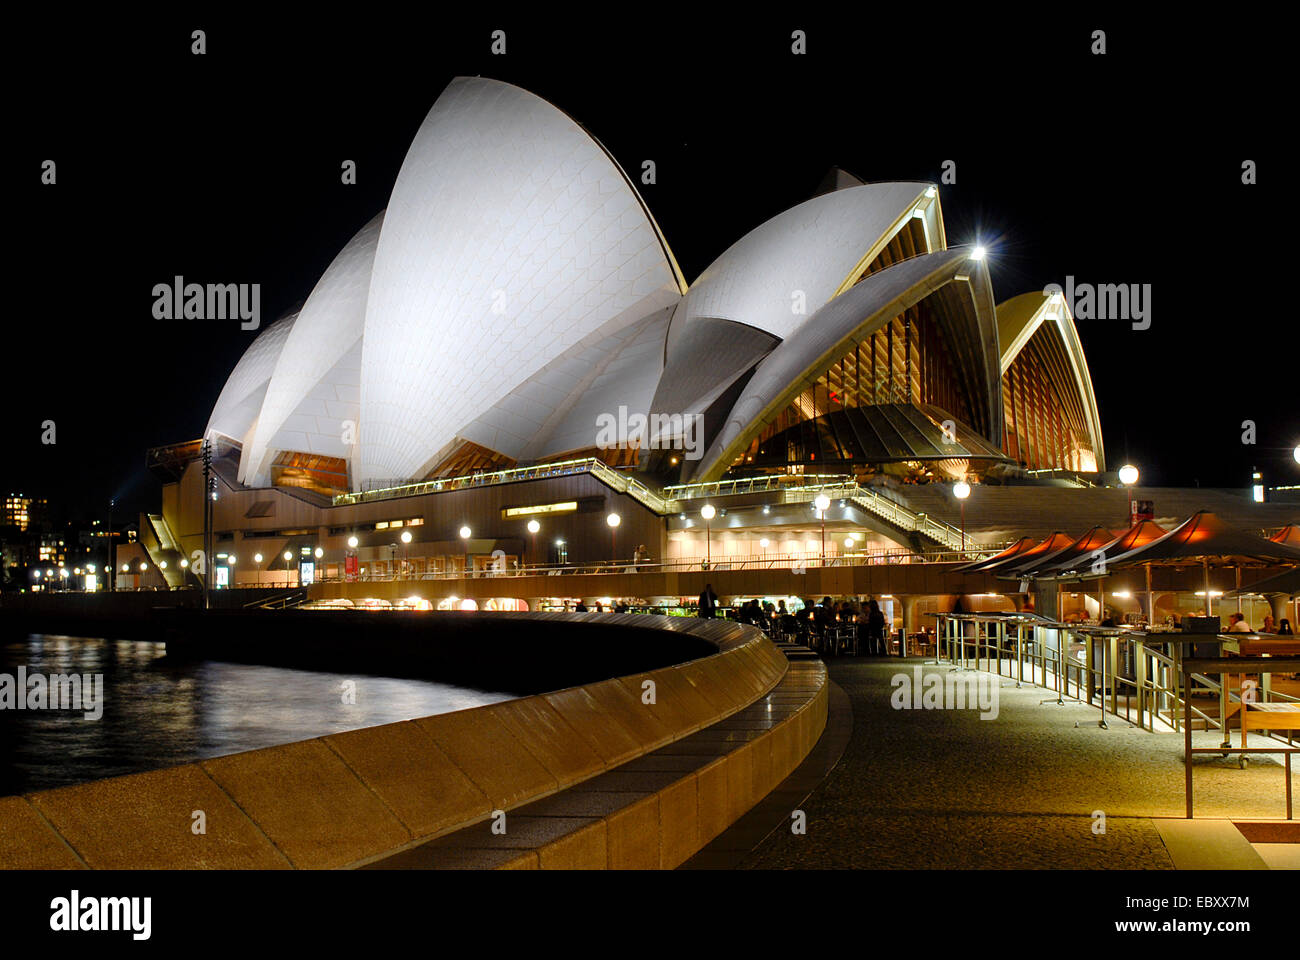 Nuit à l'Opéra de Sydney, Australie, New South Wales, Sydney Photo Stock